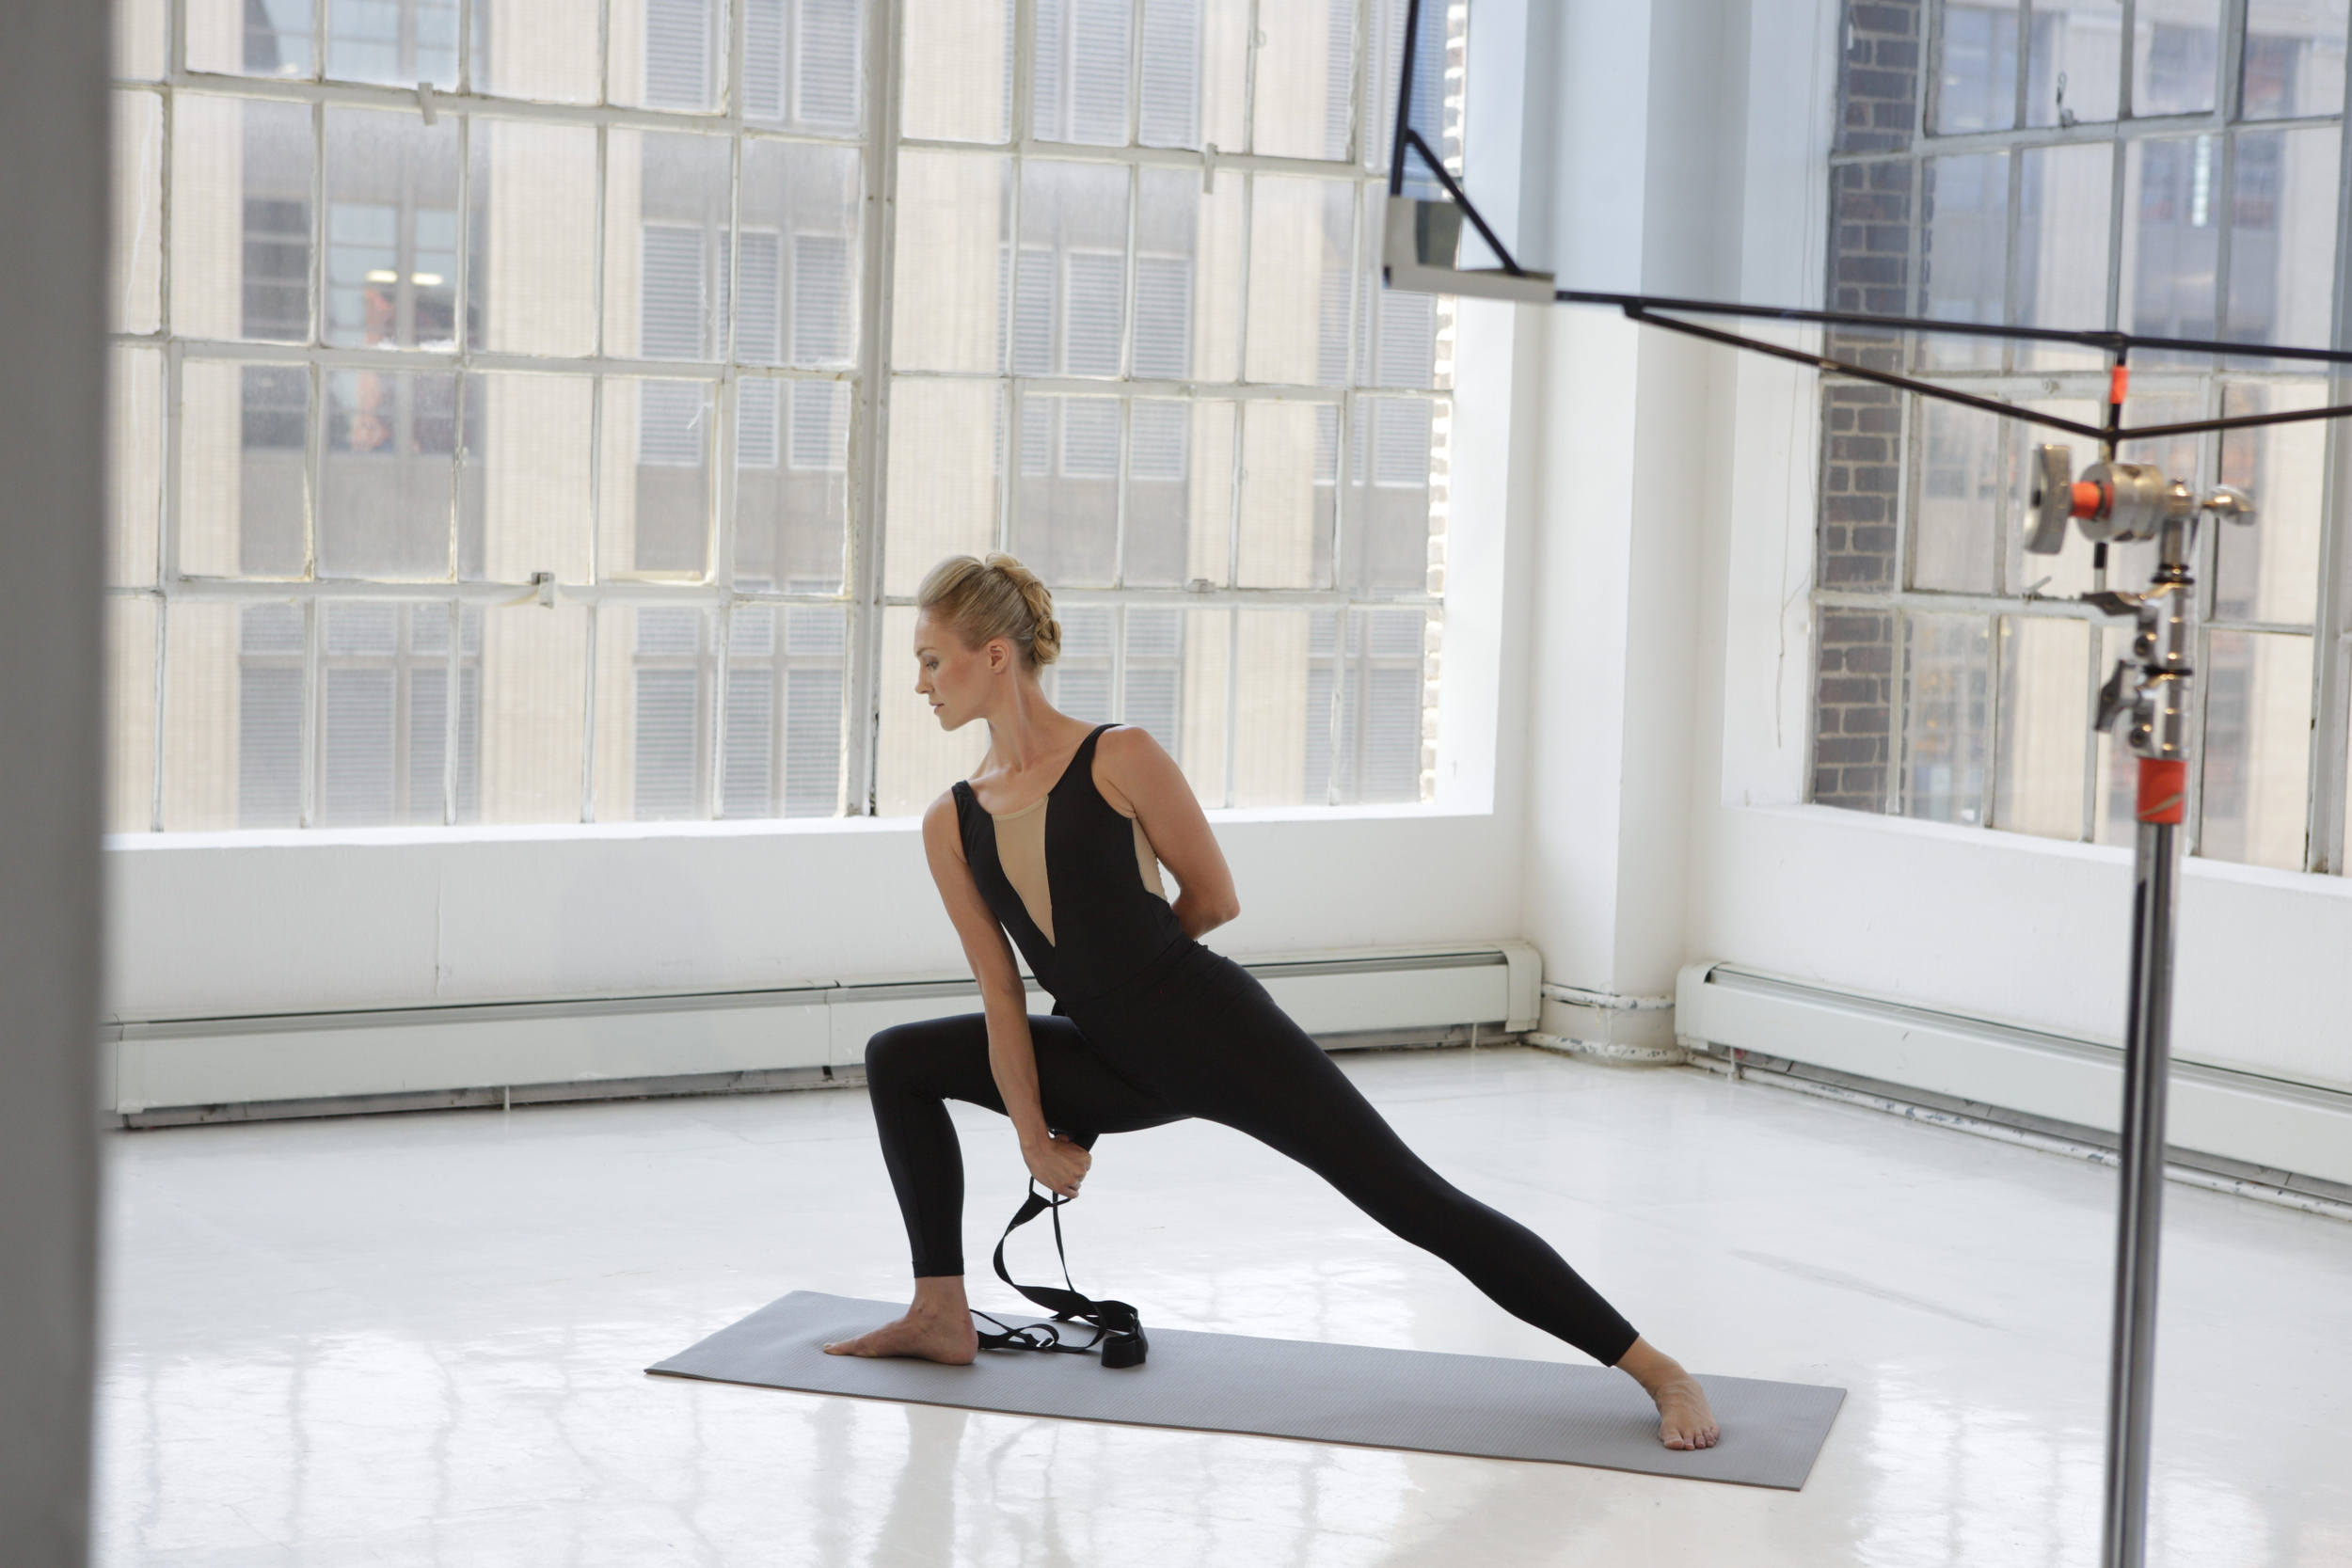 Binding beautiful: using the Flexistretcher to help complete your bind will allow you stay in correct form and fully experience the pose rather than twisting, forcing, and pulling yourself into the position